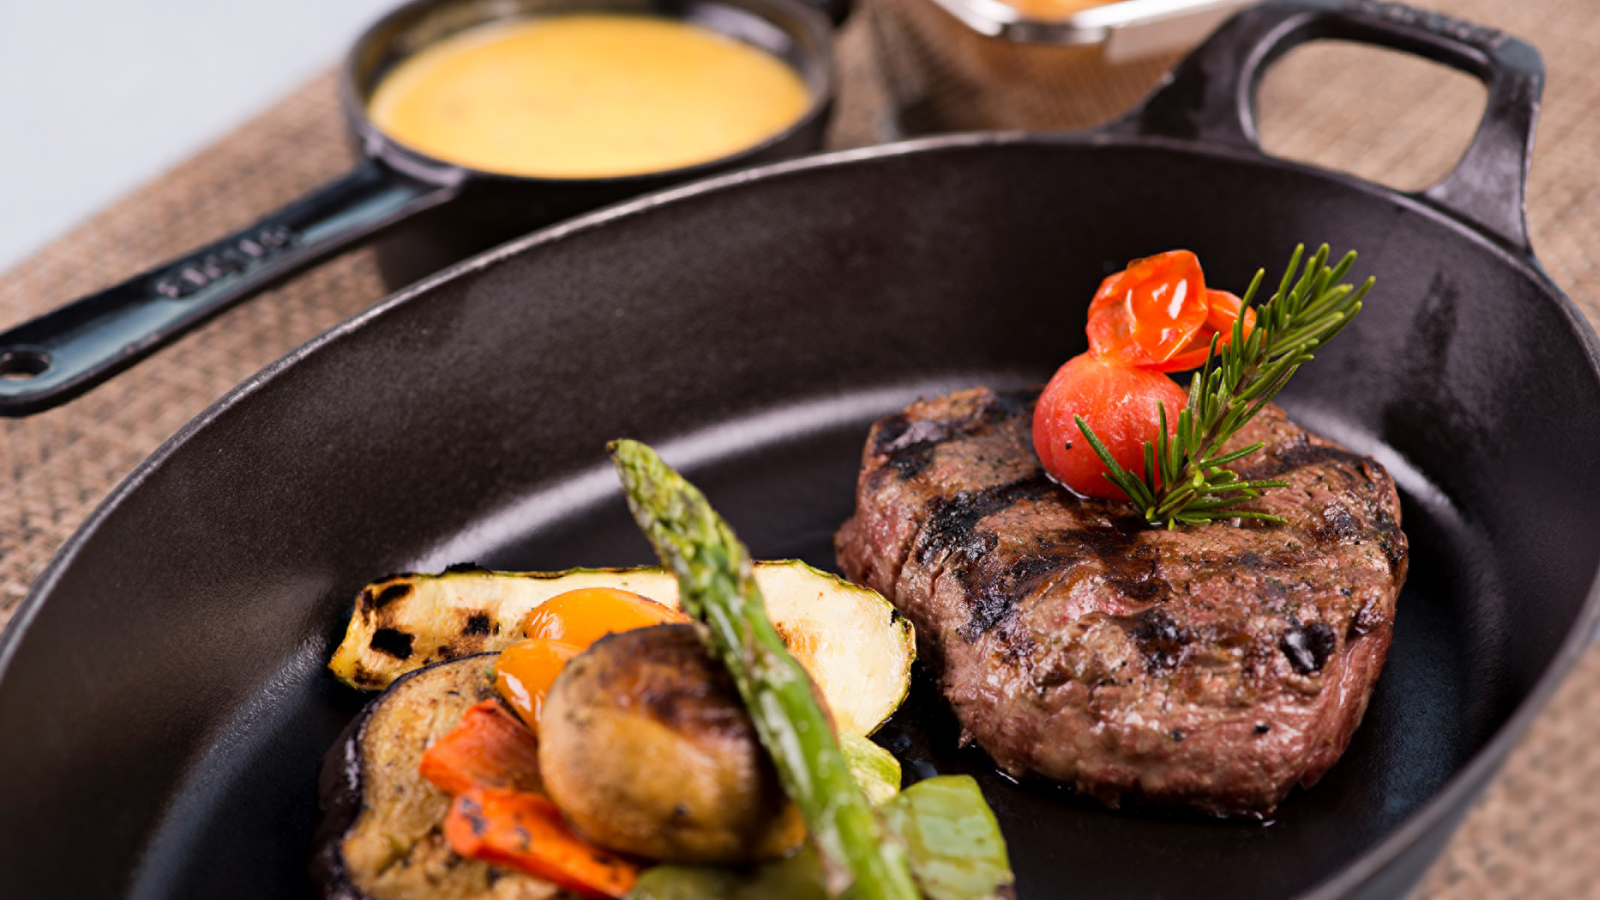 BBQ Charcoal Night at Pool Grill in Four Seasons Doha